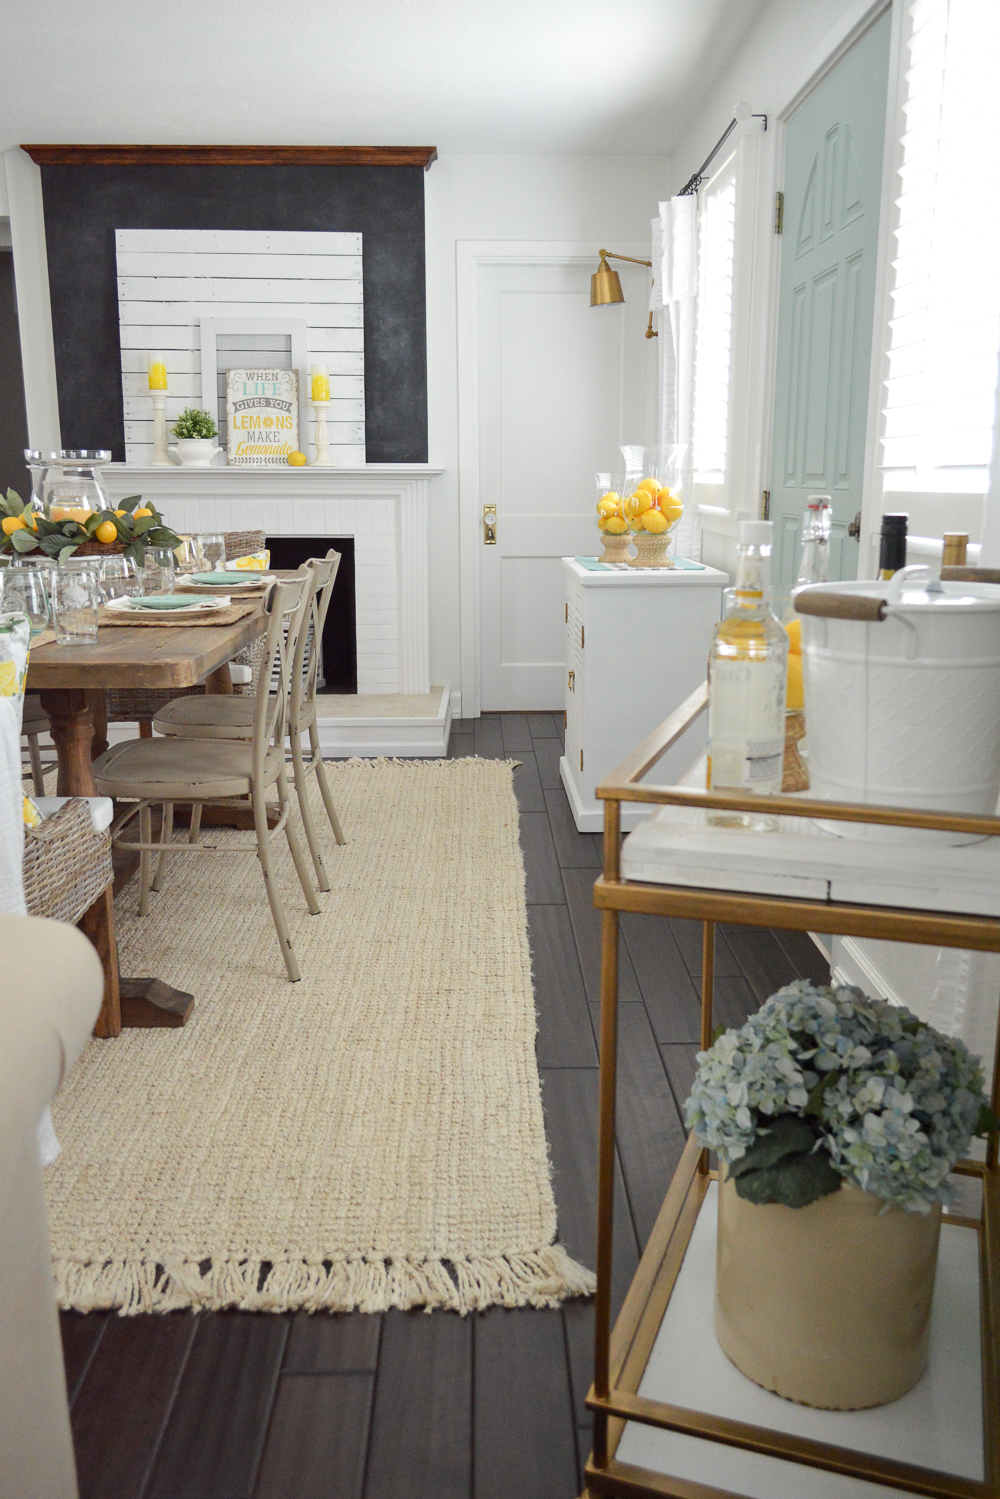 Simple Summer Decorating Ideas and Home Tour - woven sisal rug, wood floors, diy fieplace, car cart, brass wall sconce lights